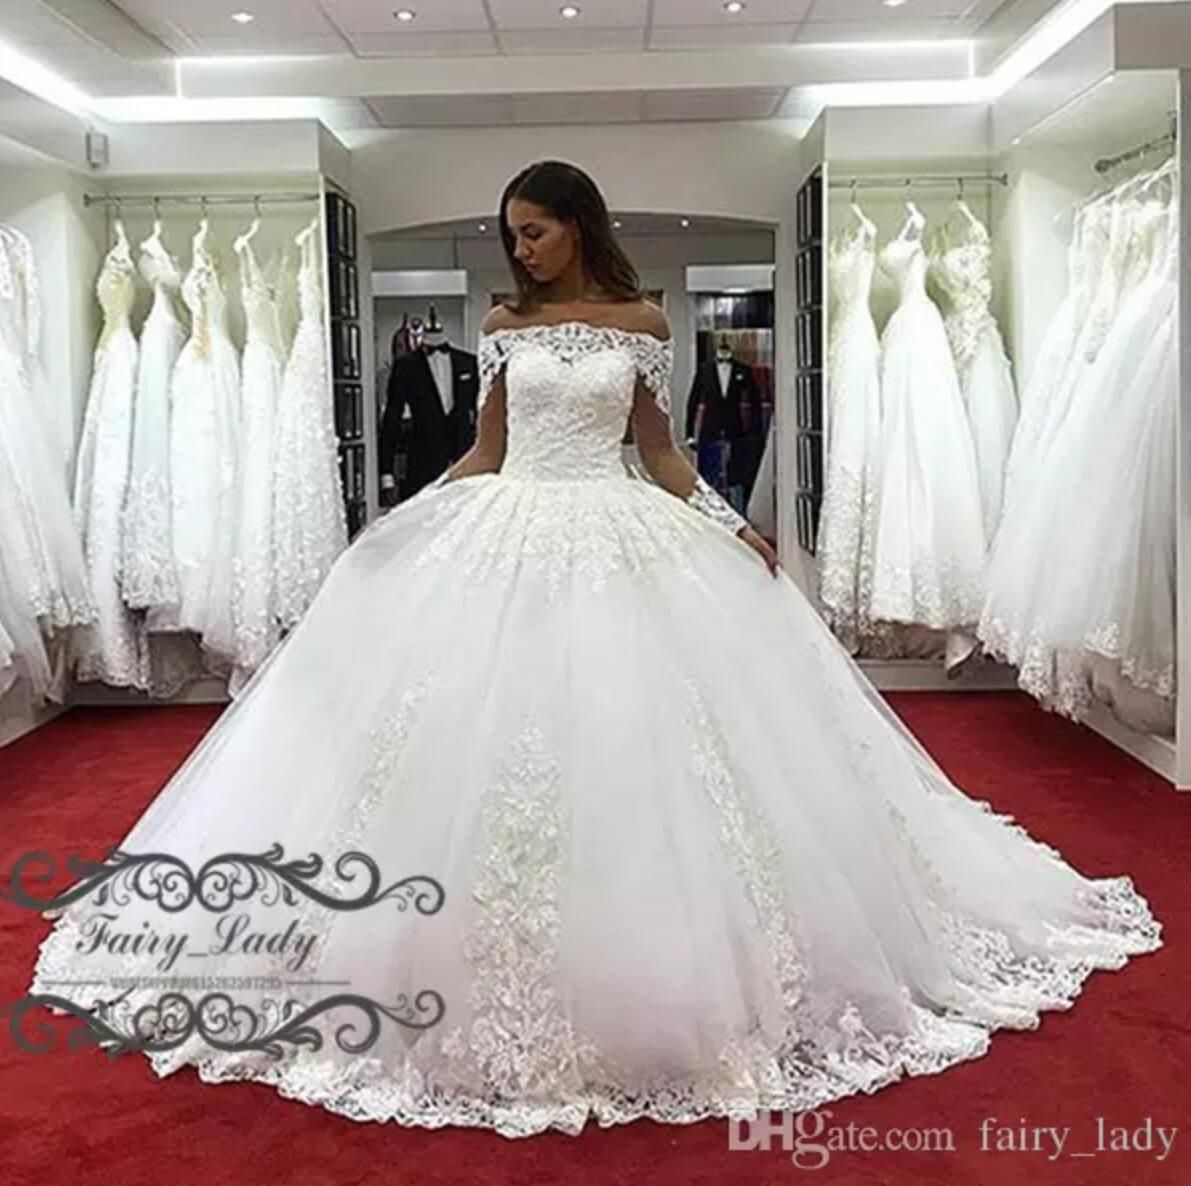 Gorgeous off shoulder country bridal wedding dresses with long